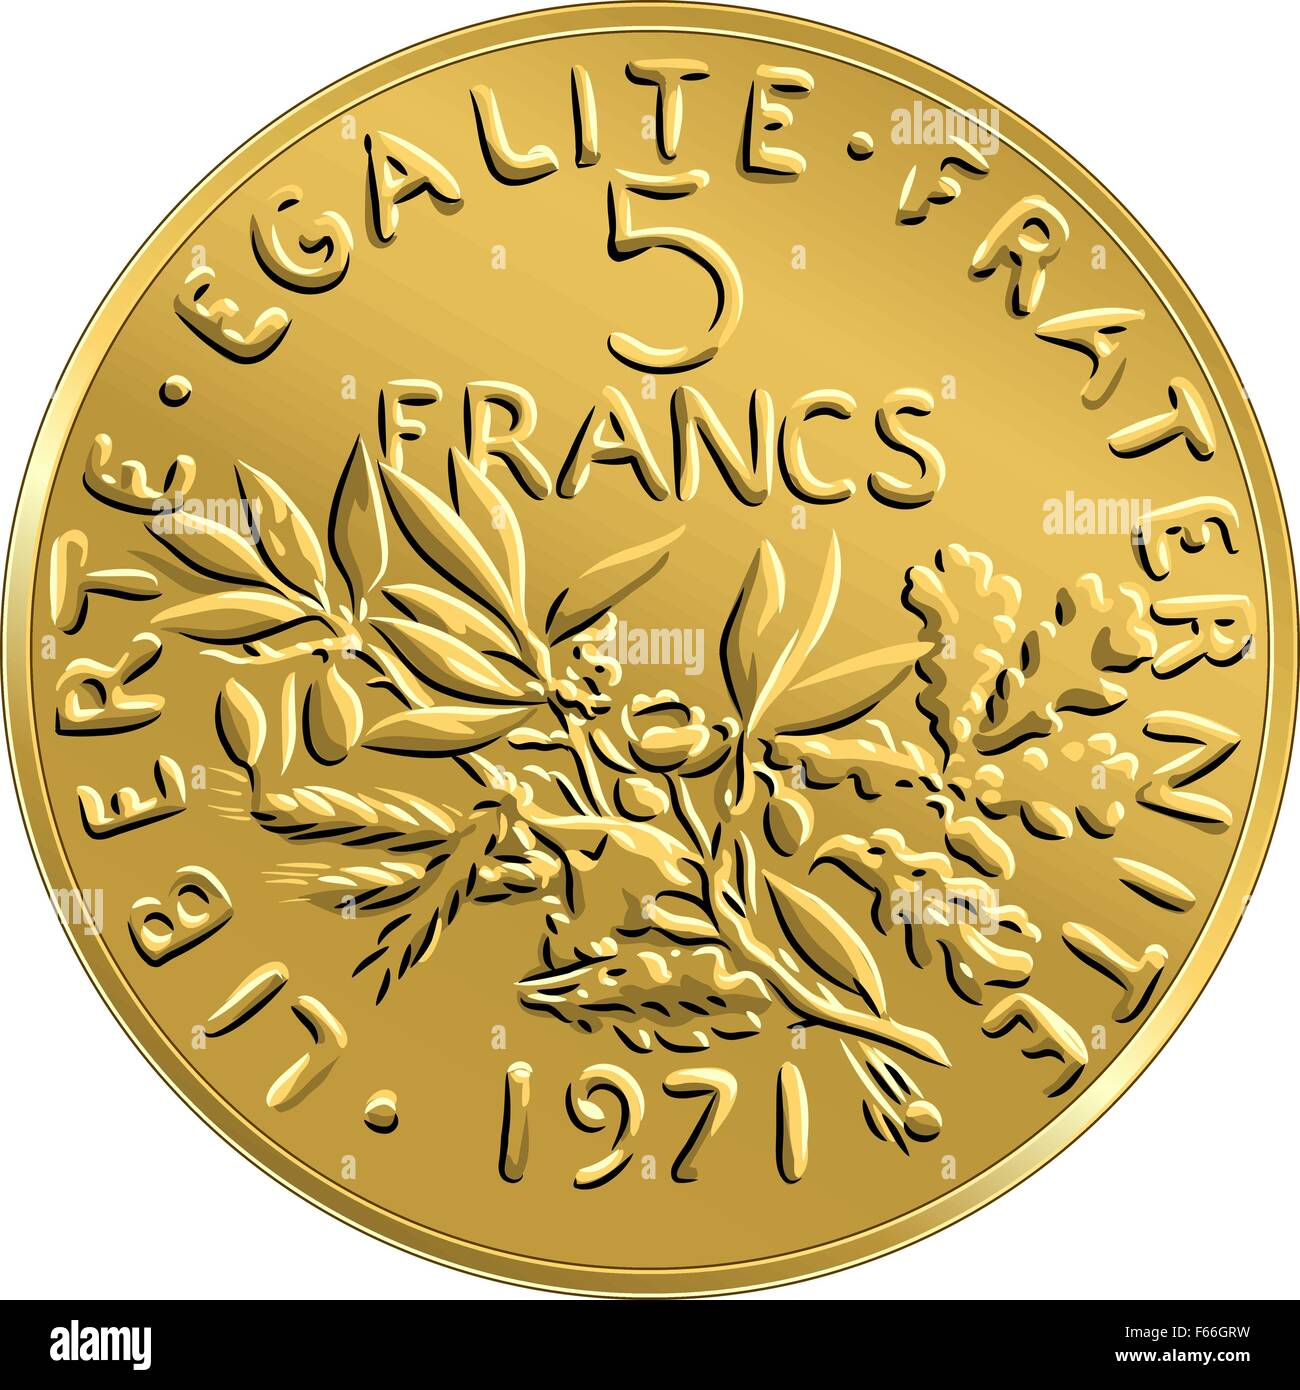 vector French money coin ffive francs obverse - Stock Image